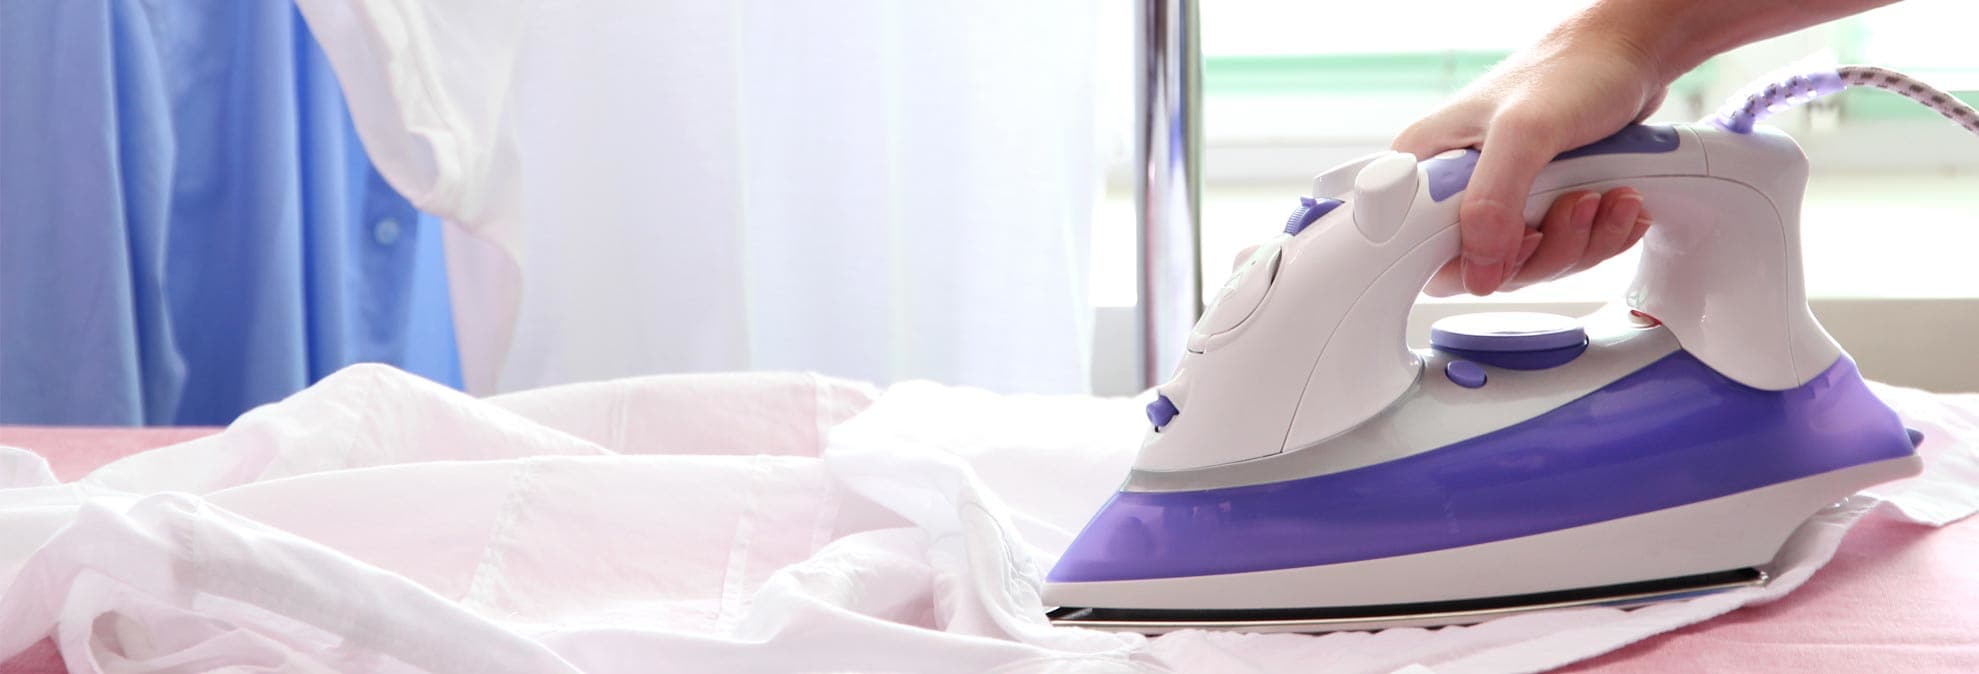 Consumer Report Best Irons ~ Best steam iron buying guide consumer reports